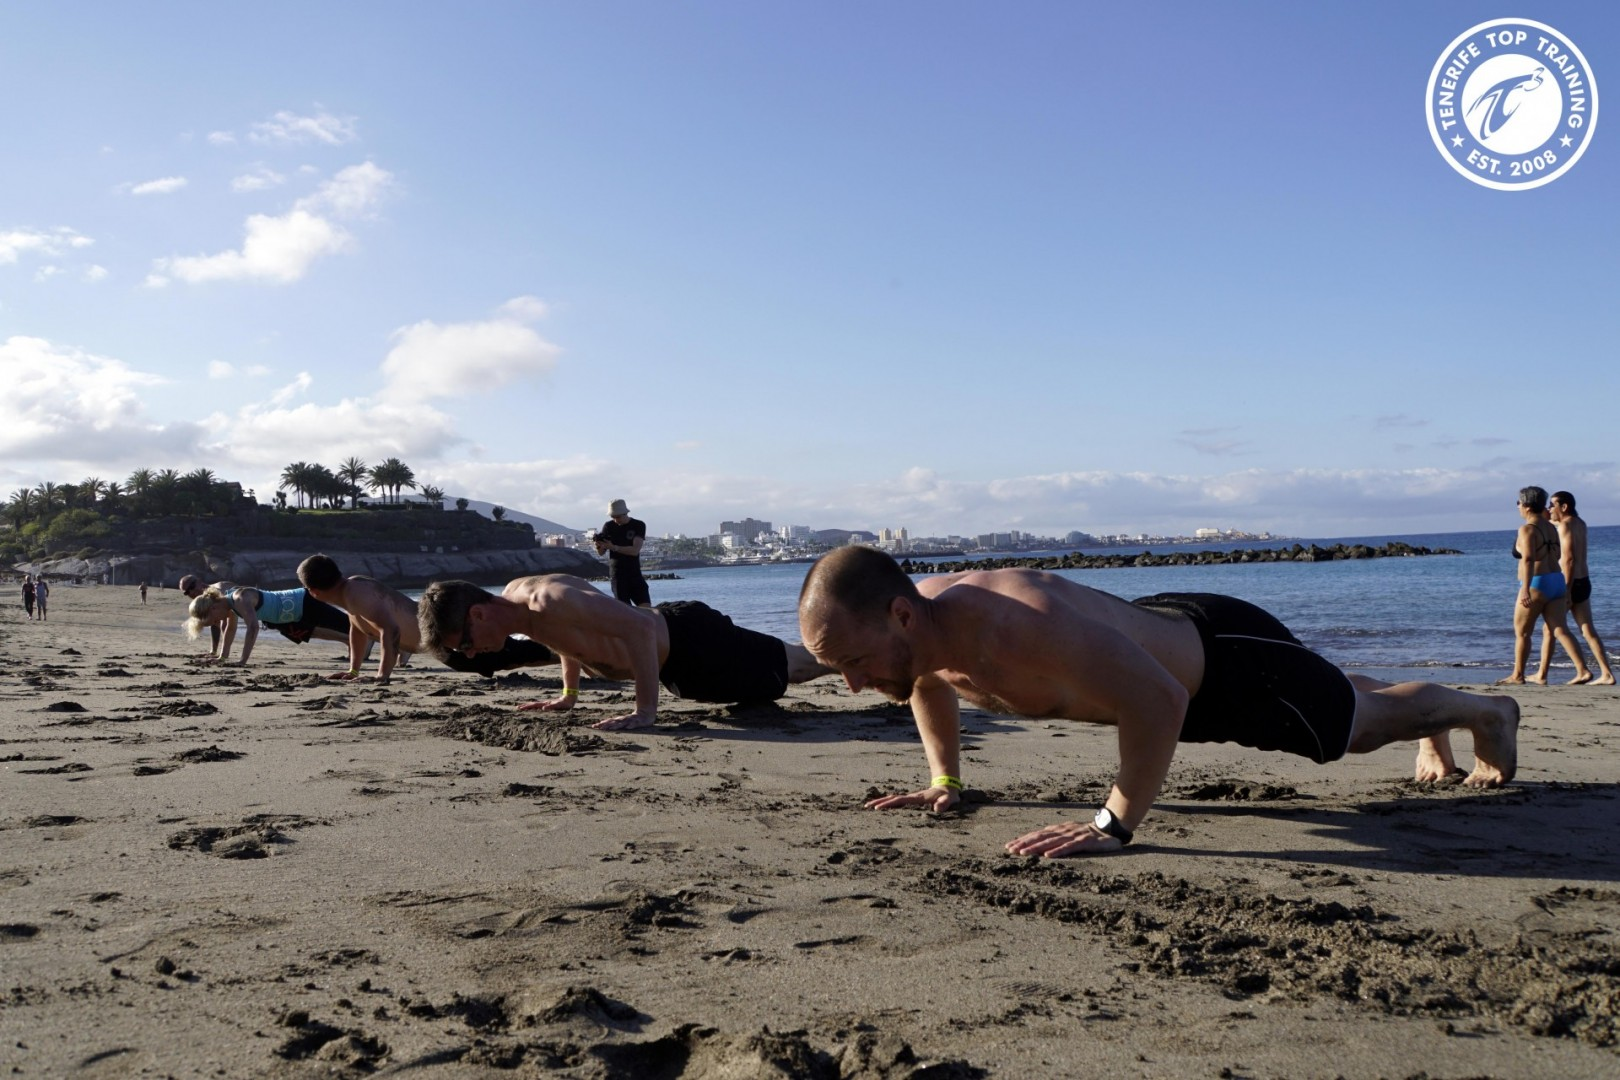 Take your CrossFit community to Tenerife and have some WODs at the most beautiful beaches